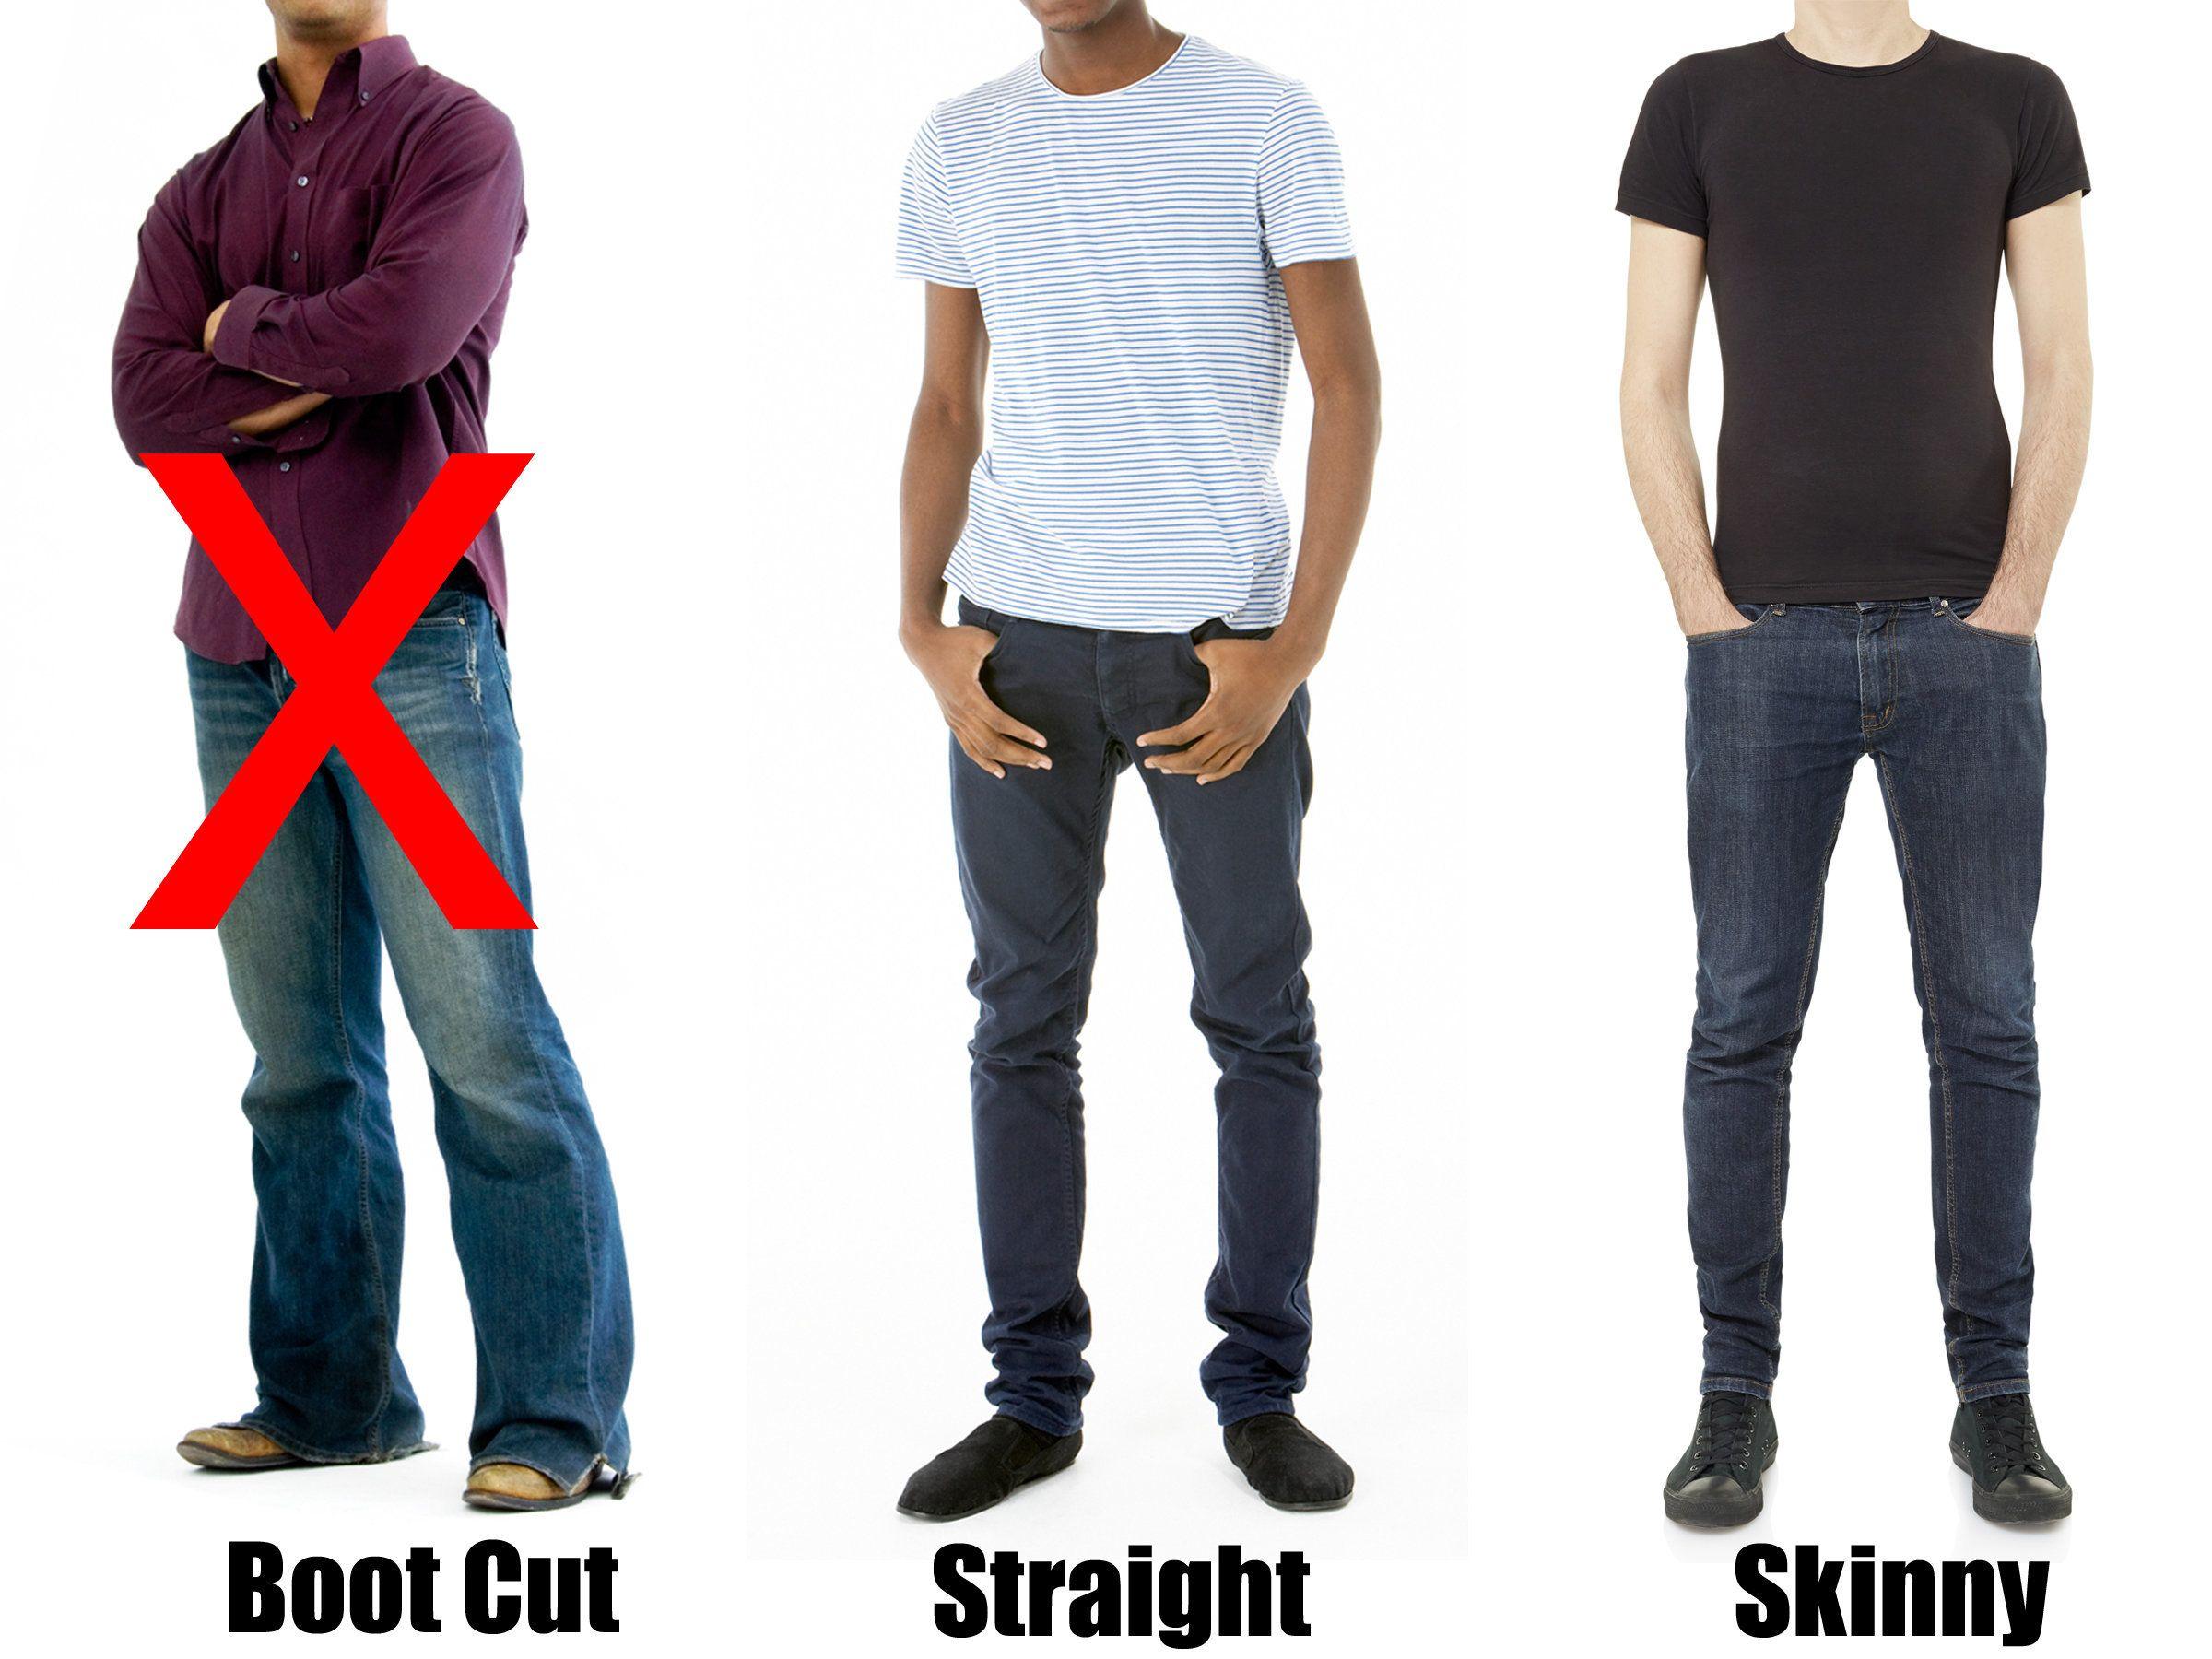 Skinny jeans don't look good on me